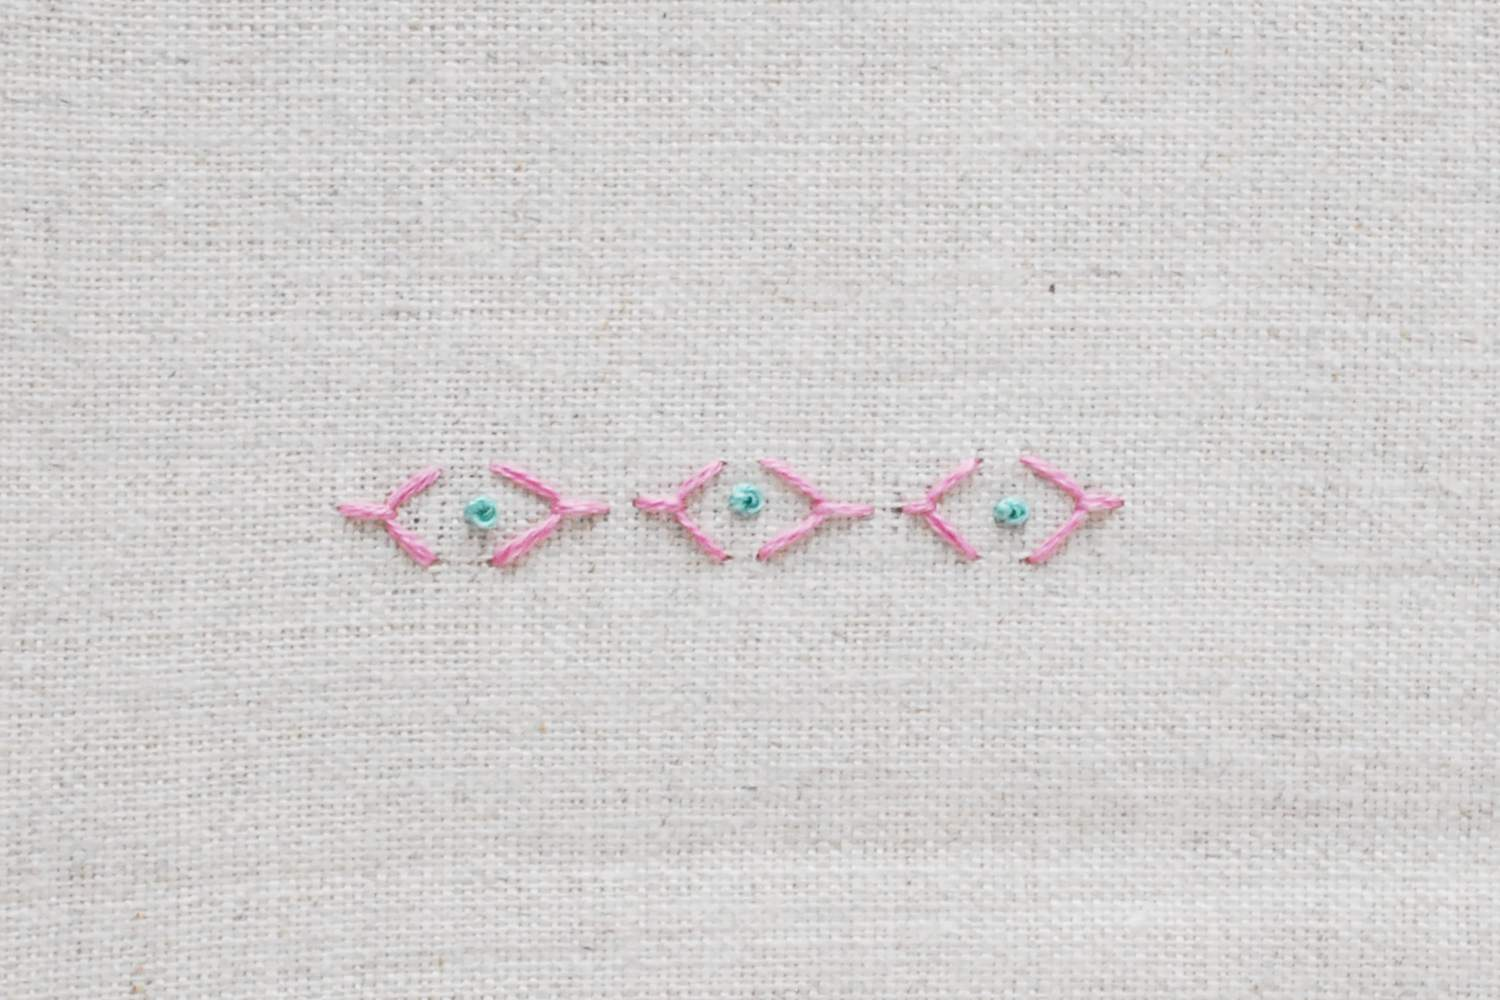 Fly Stitch and French Knots